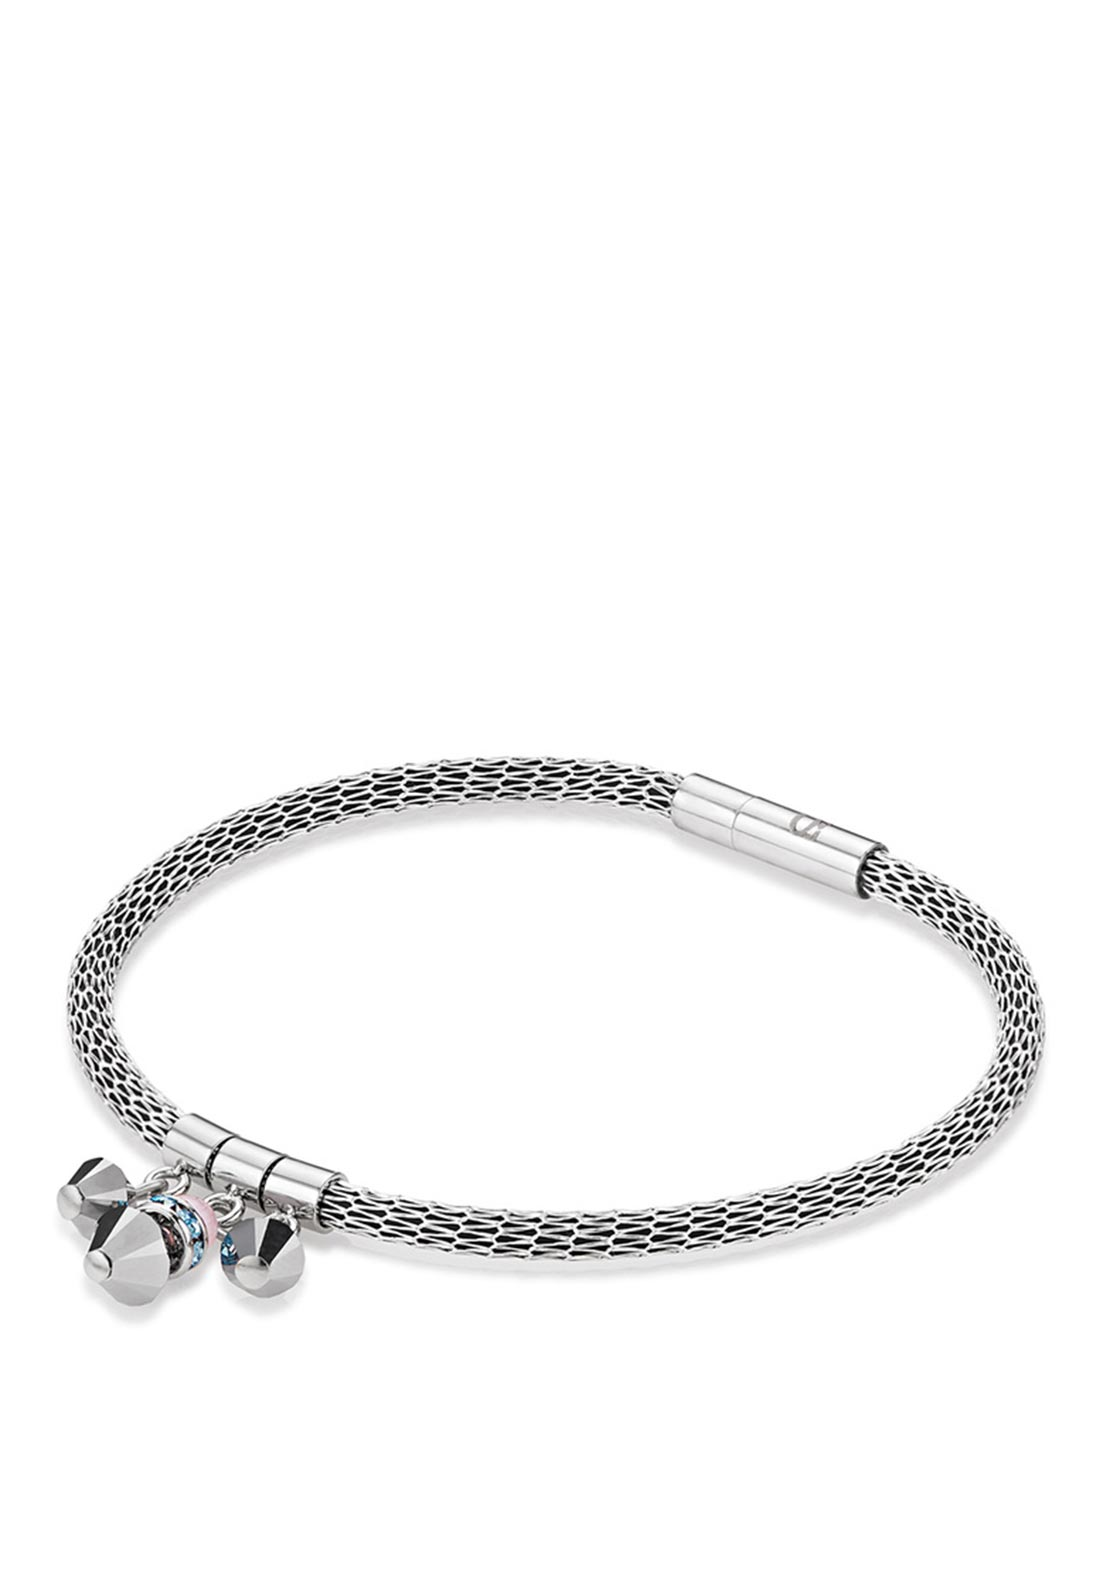 Coeur de Lion Swarovski Crystal and Mesh Bracelet, Multicolour Pastel